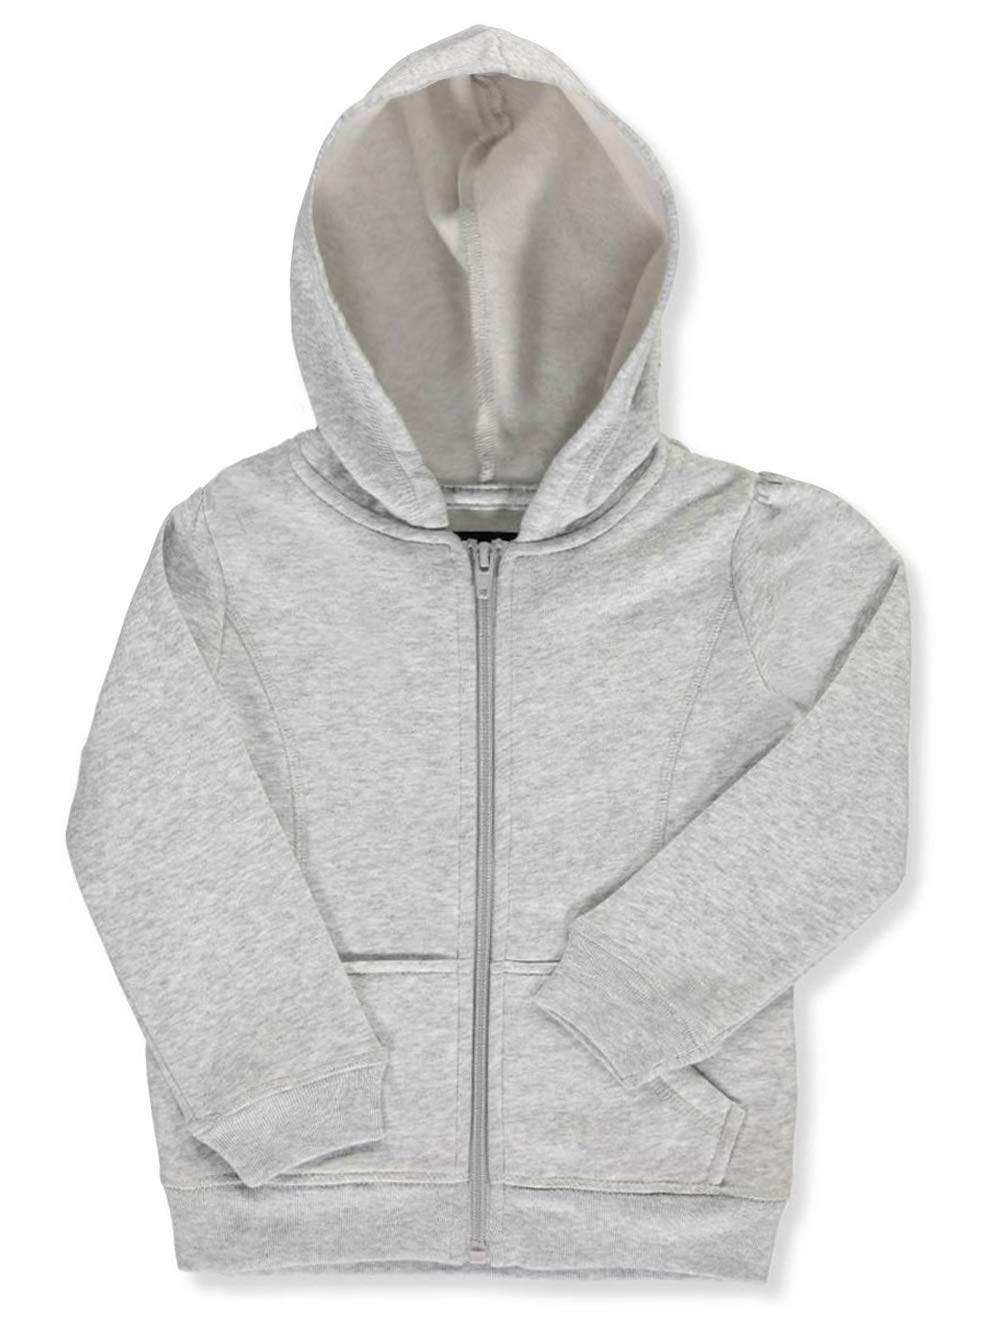 French Toast Girls Fleece Hoodie SP9130